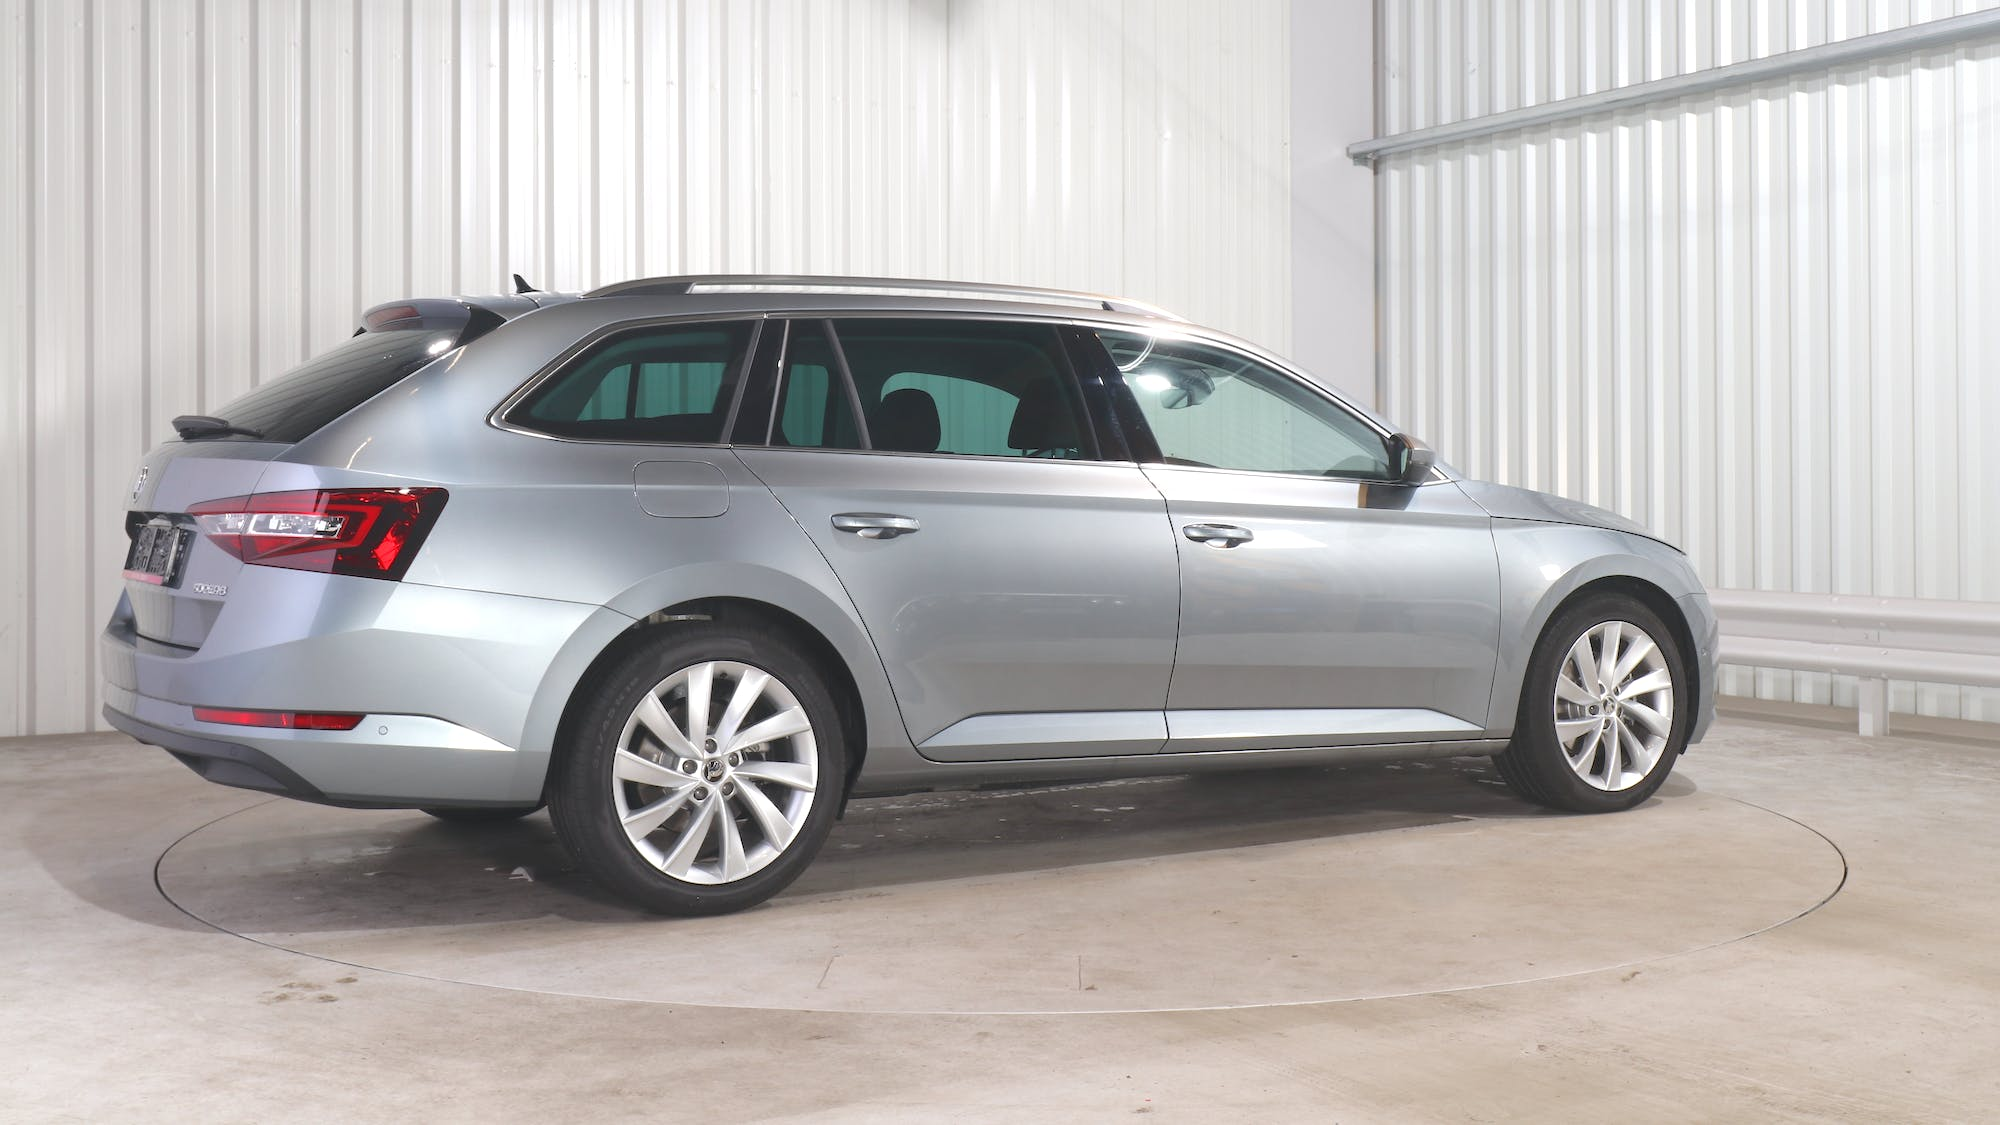 SKODA SUPERB COMBI leasing exterior 7